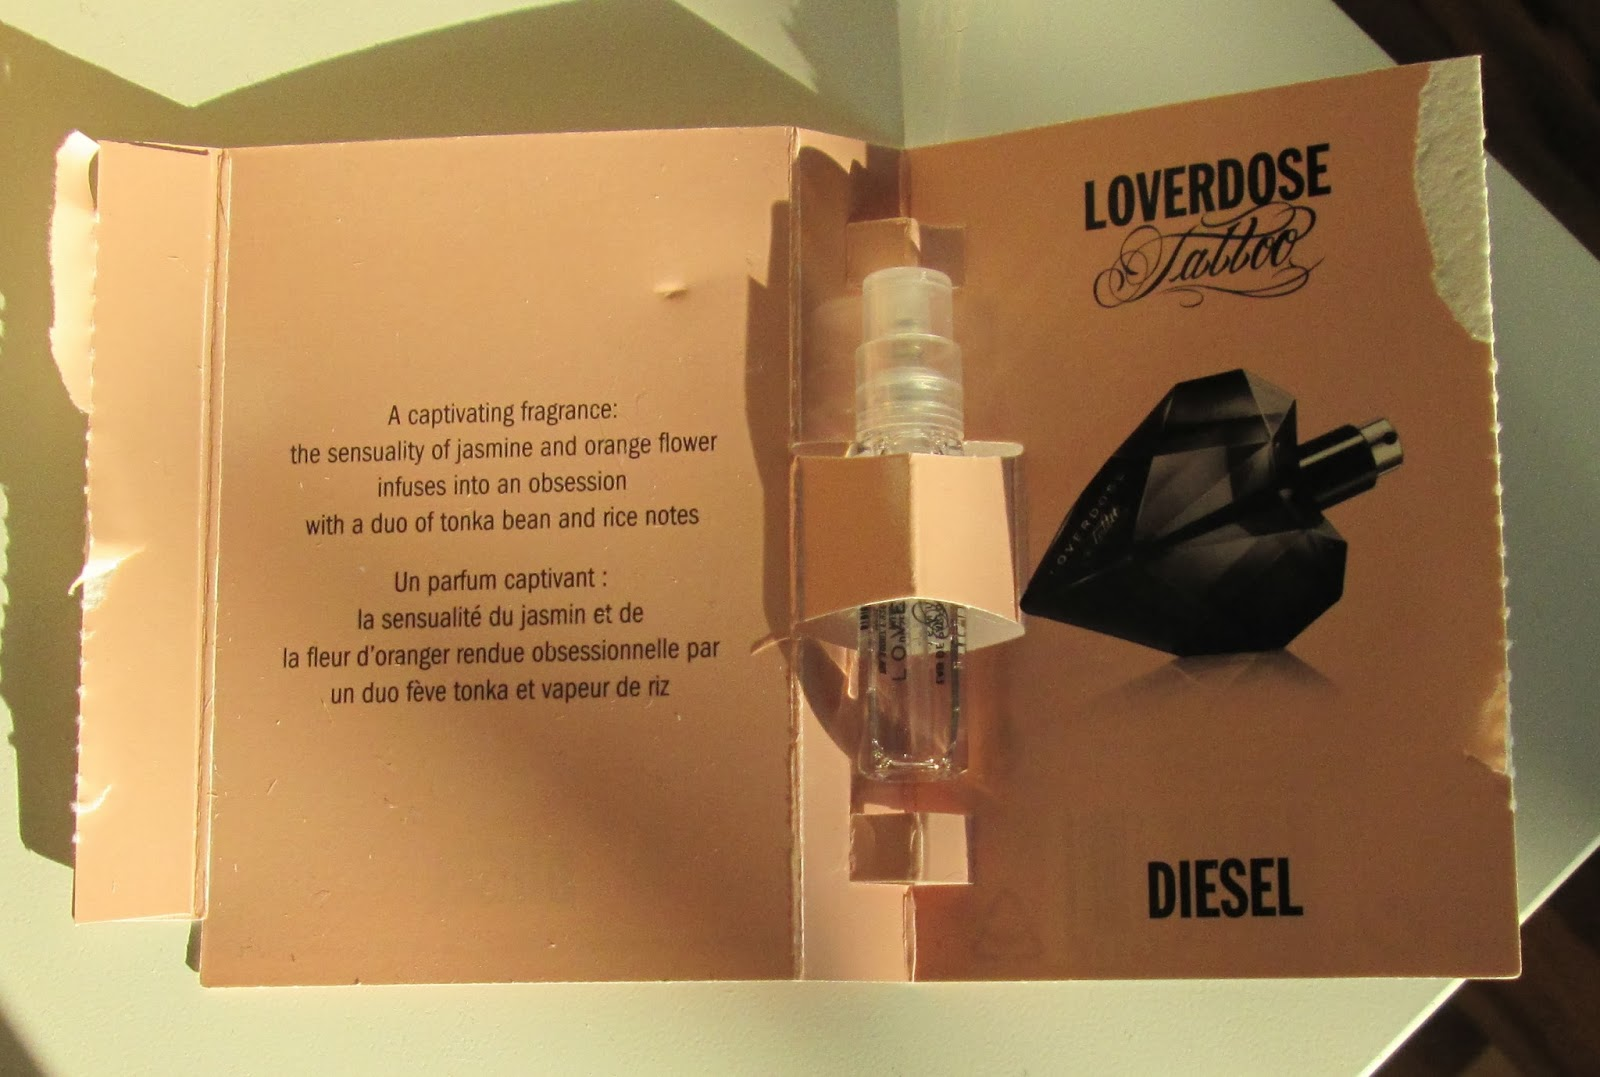 Beautyful Blog By Pampashase Review Diesel Loverdose Tattoo Eau